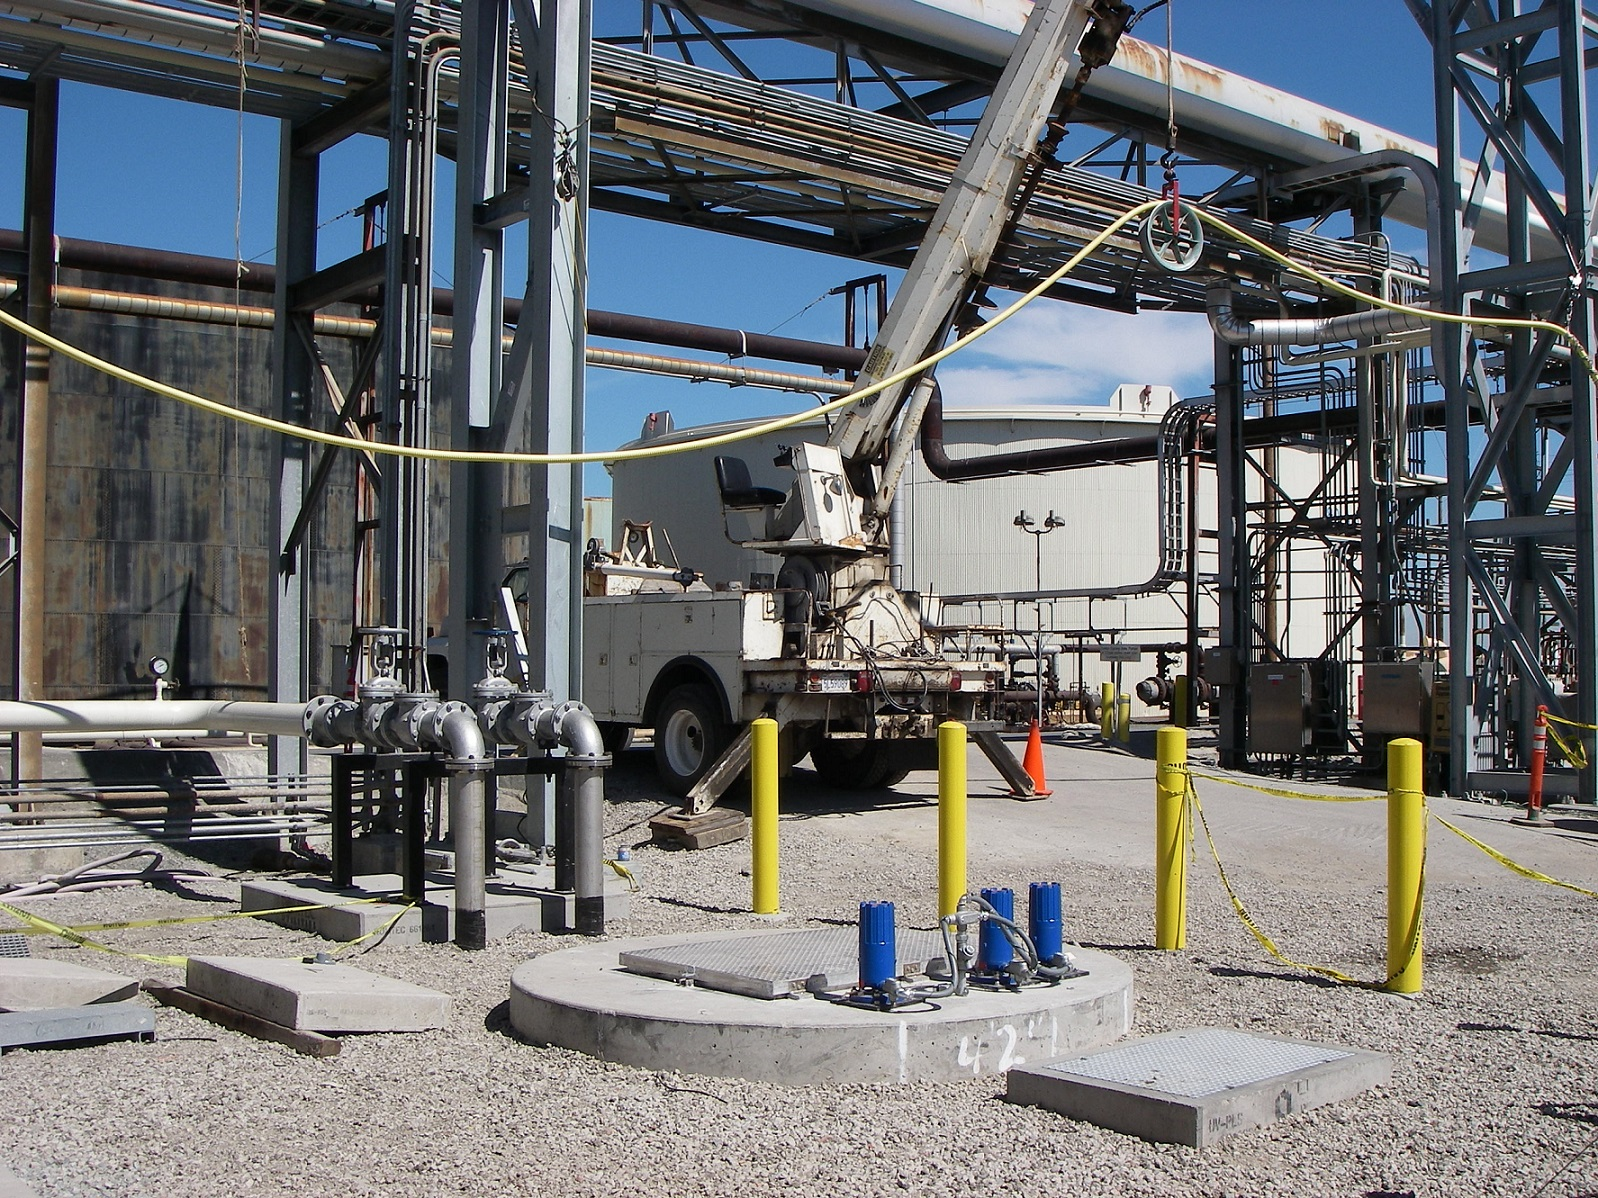 Industrial Pumping System